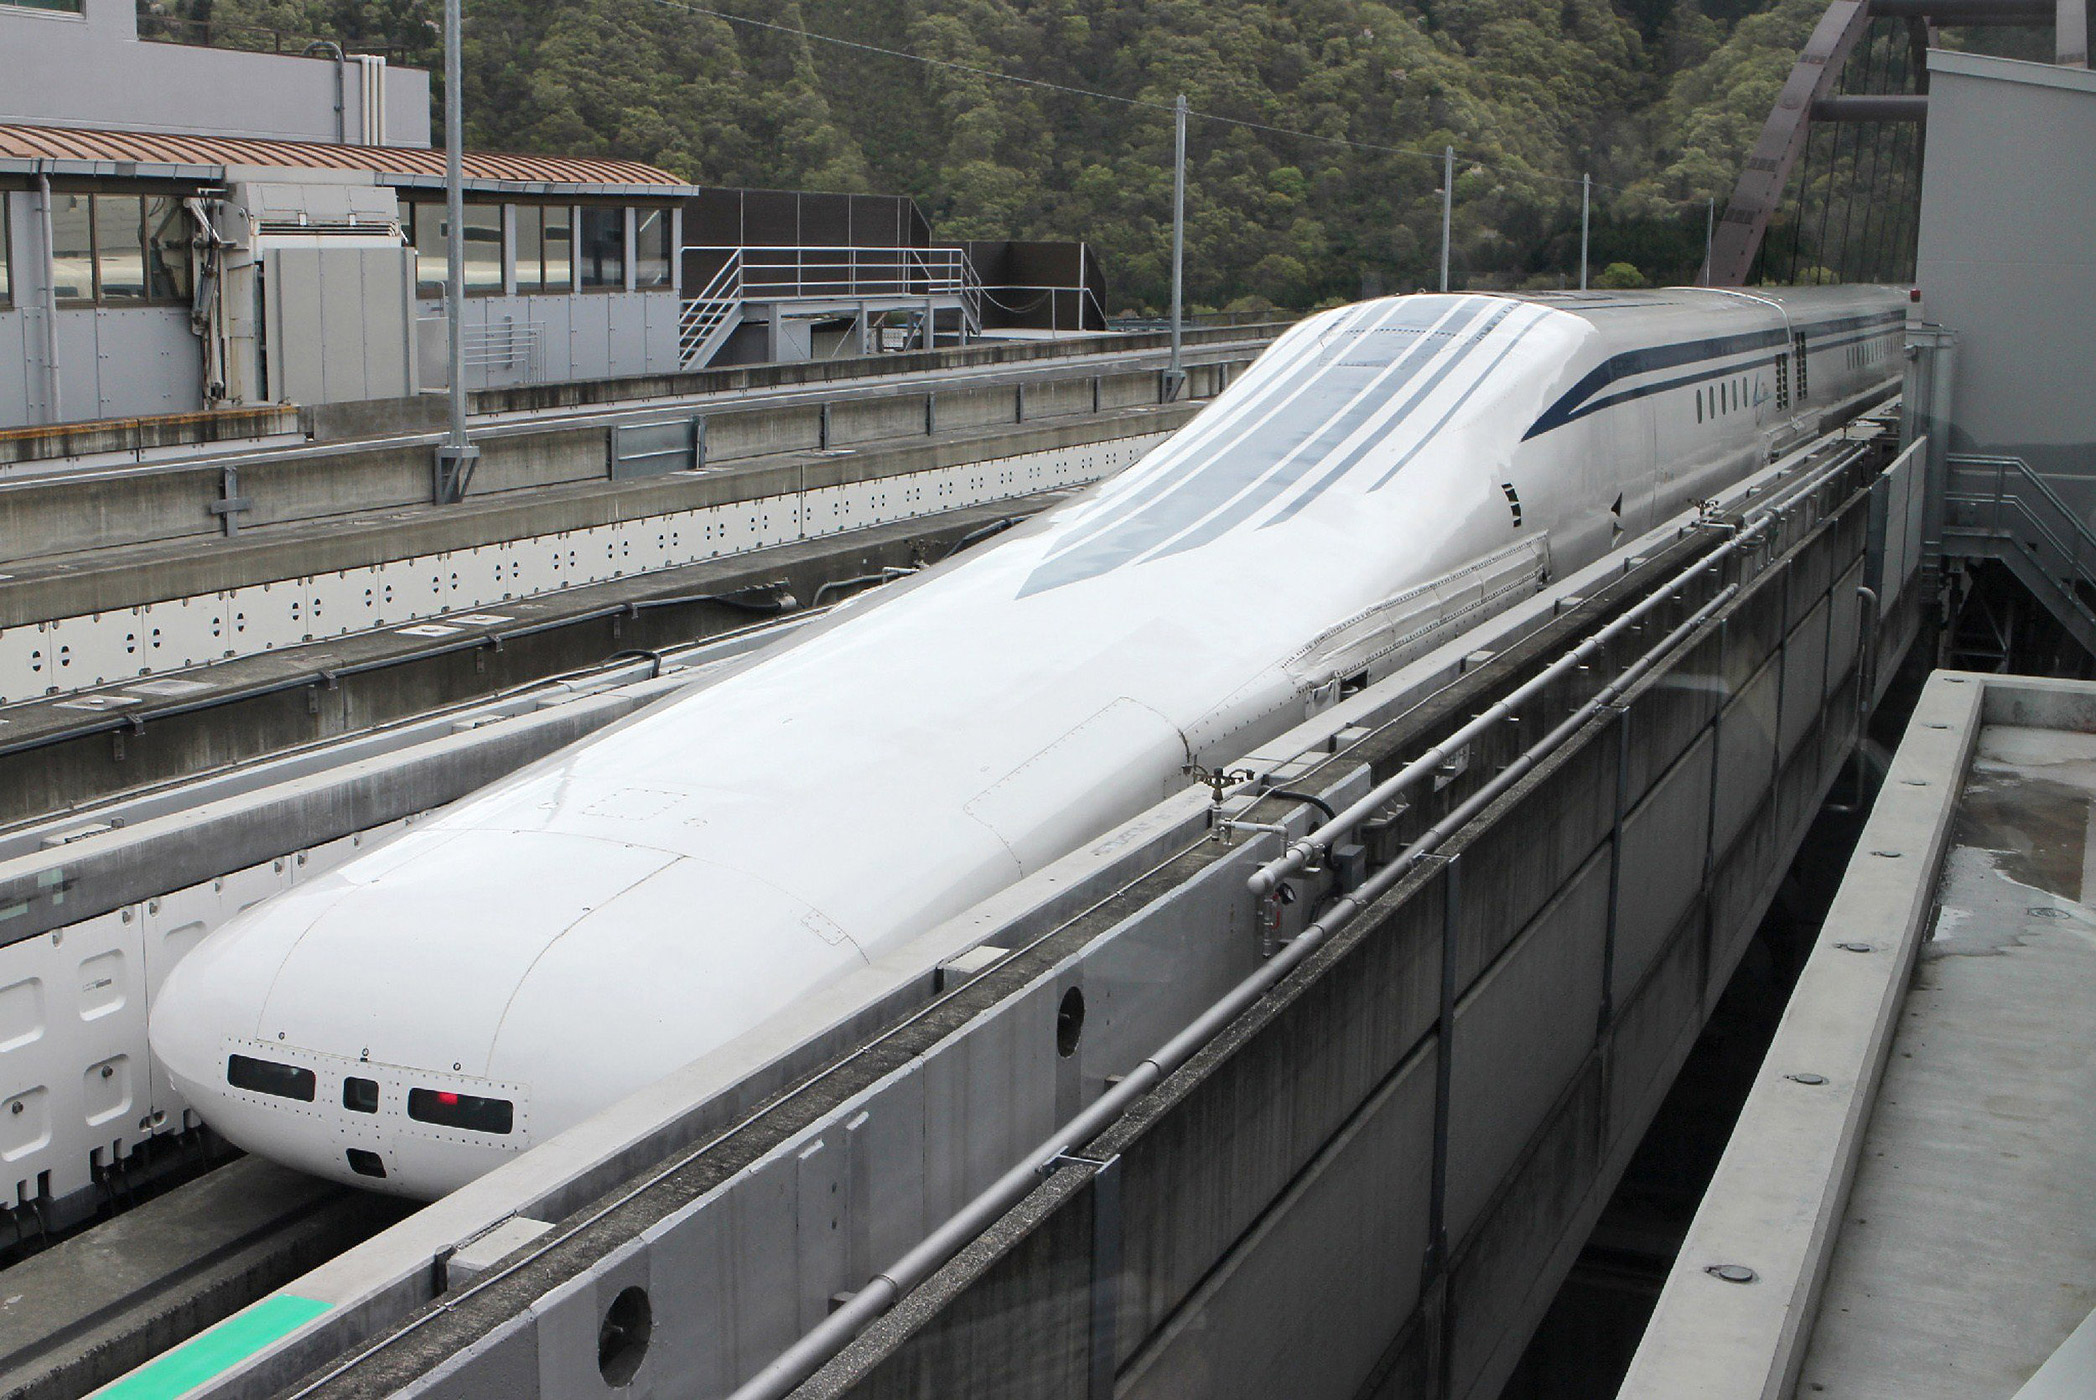 Central Japan Railway's seven-car maglev train returns to the station after setting a new world speed record in a test run near Mount Fuji  on April 21, 2015.